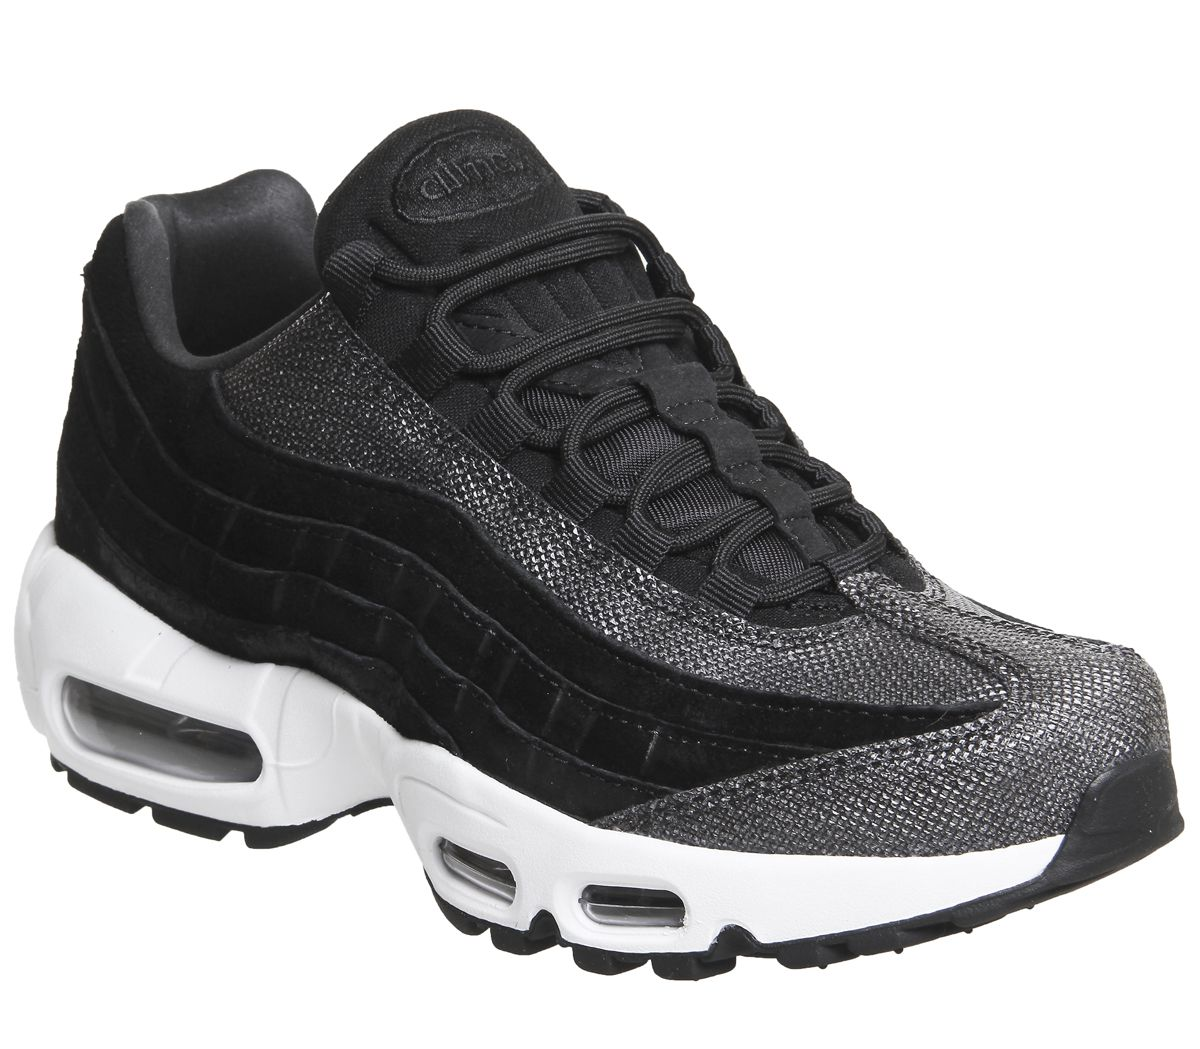 meet be61e 39fd6 Nike Air Max 95 Trainers Black Black White - Unisex Sports